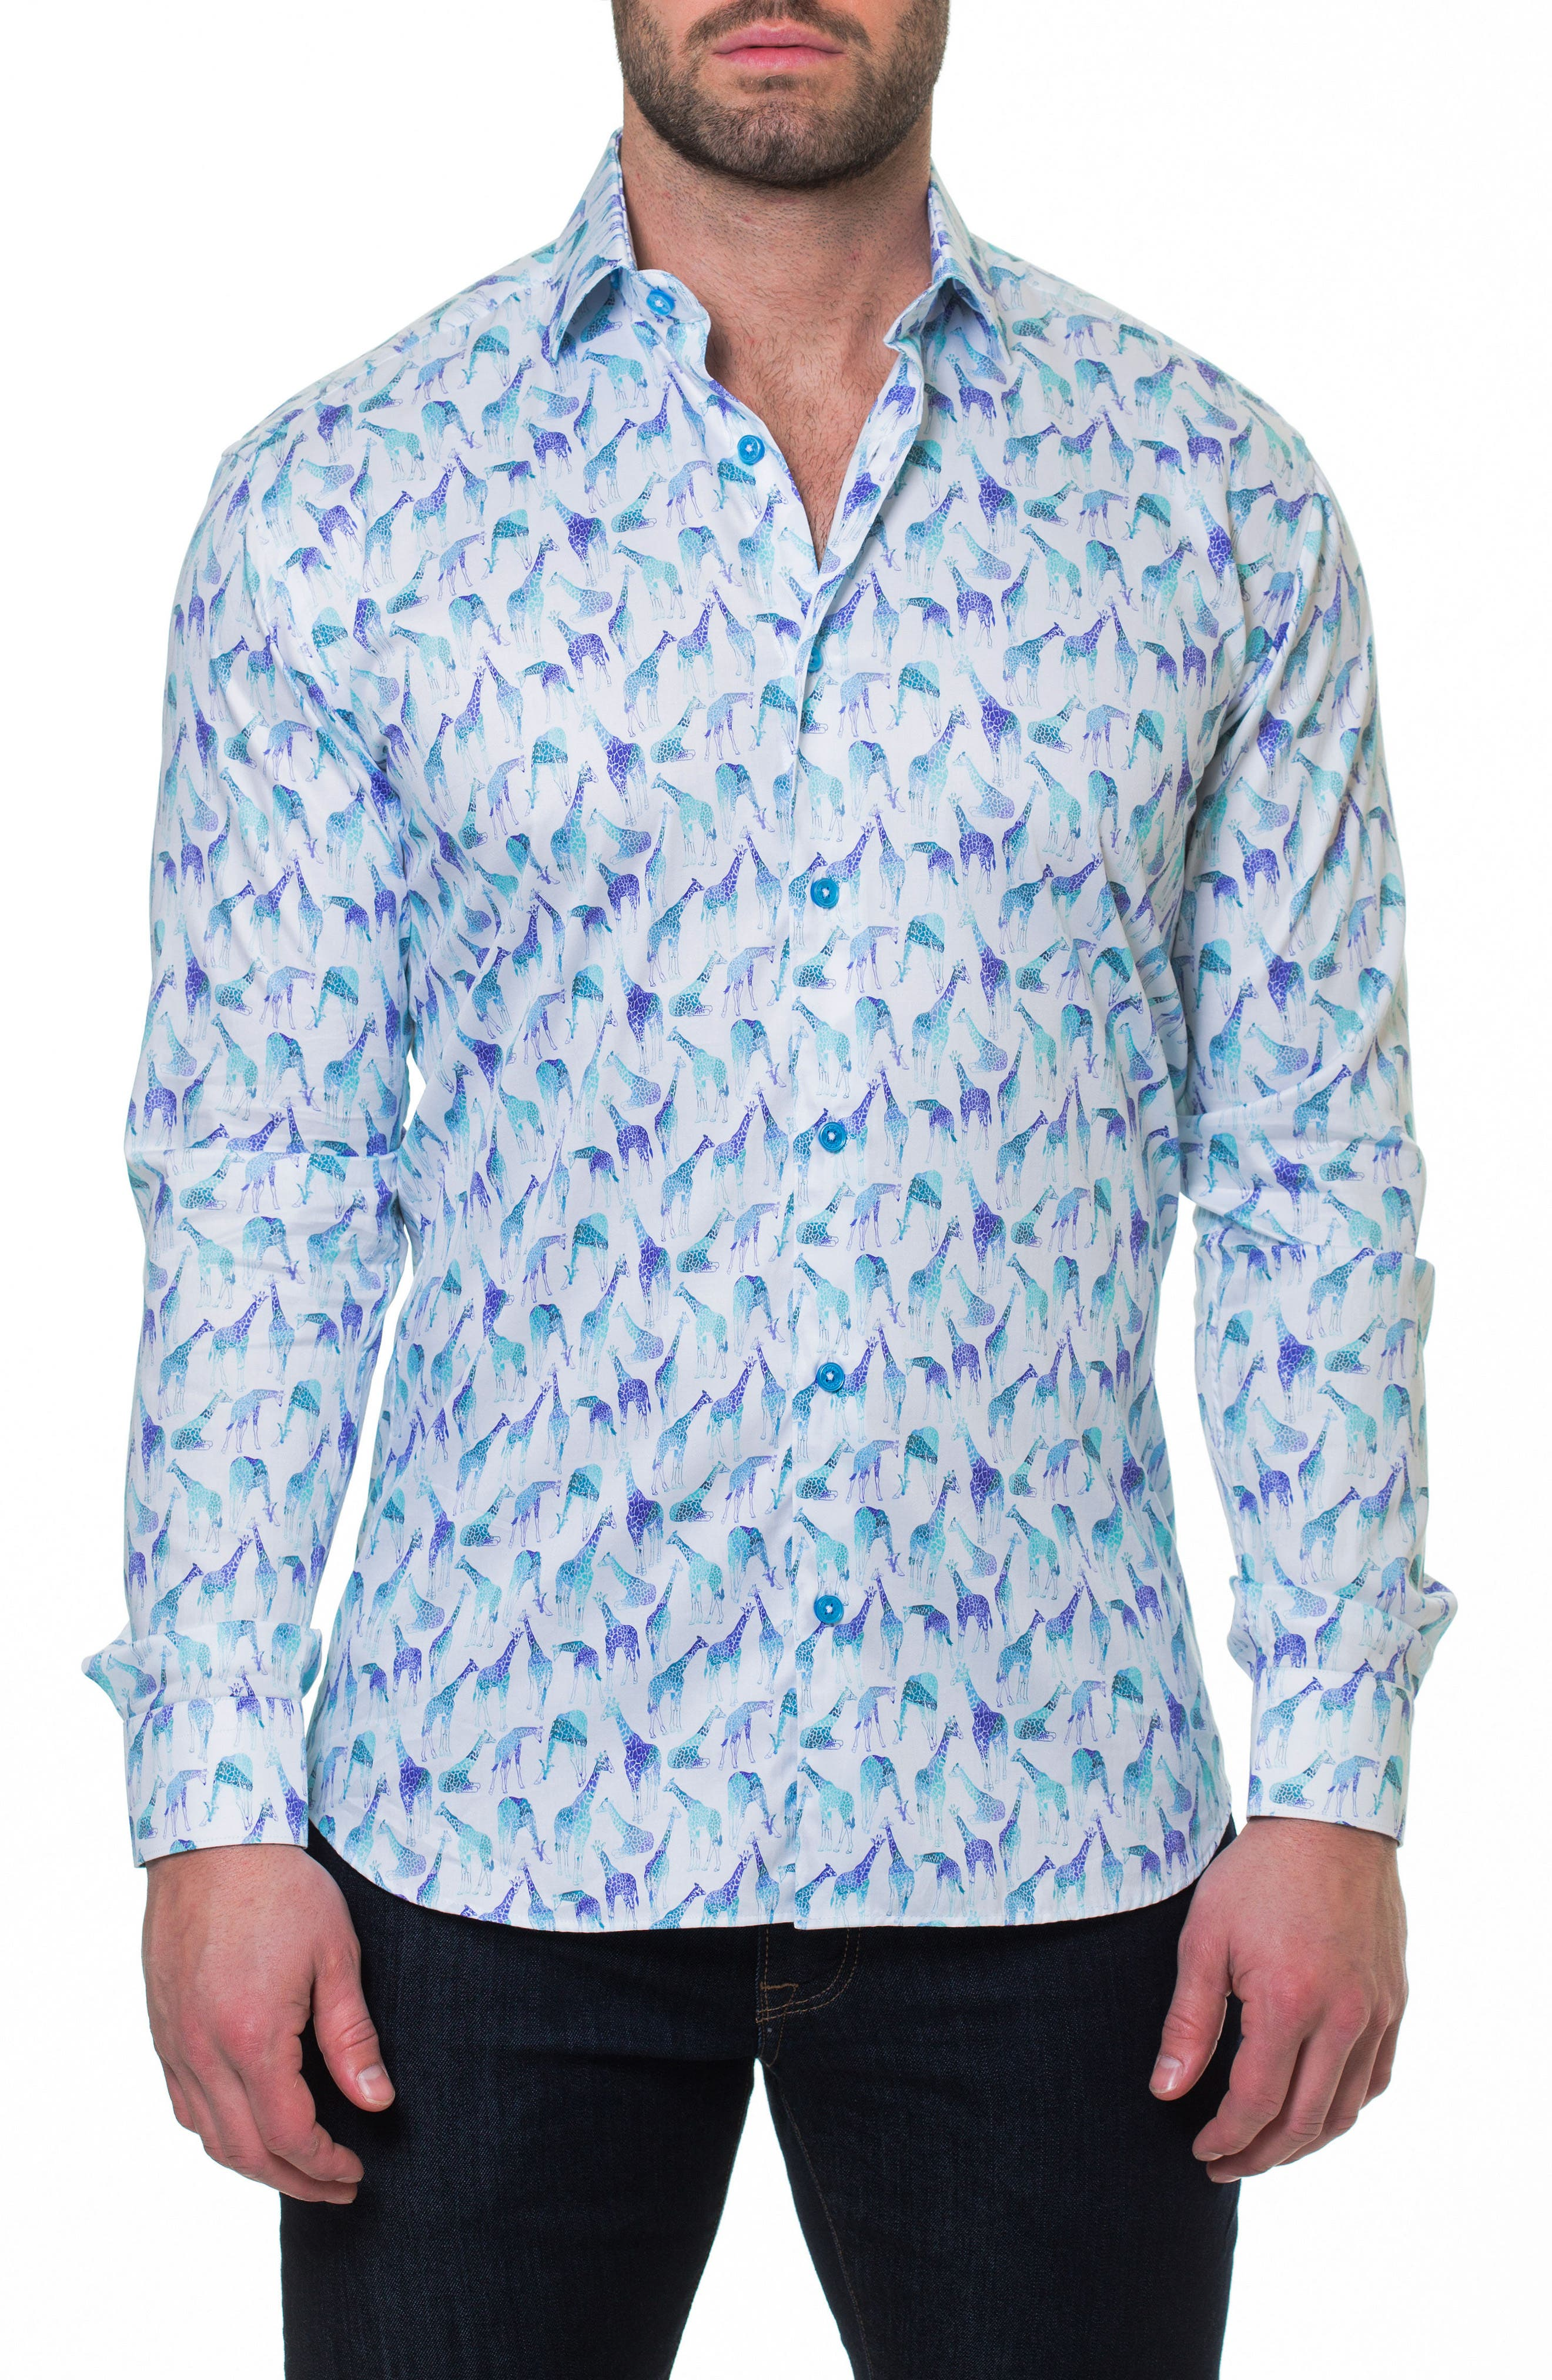 Luxor Giraffe Sport Shirt,                             Main thumbnail 1, color,                             Blue